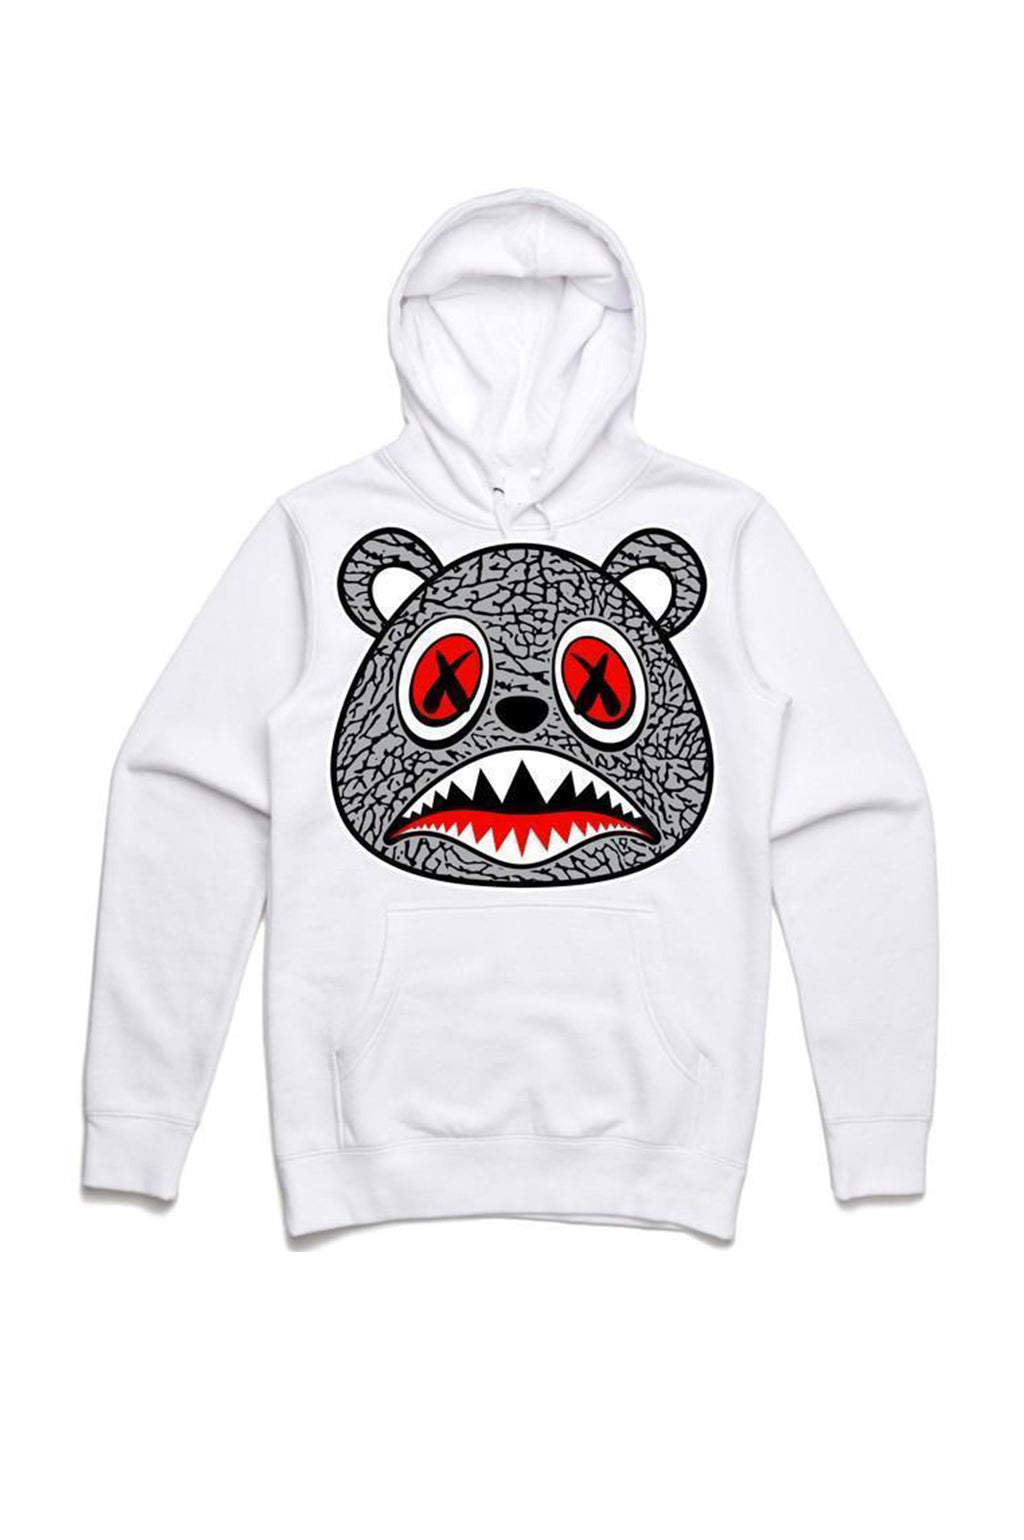 Baws Elephant Baws Hoodie